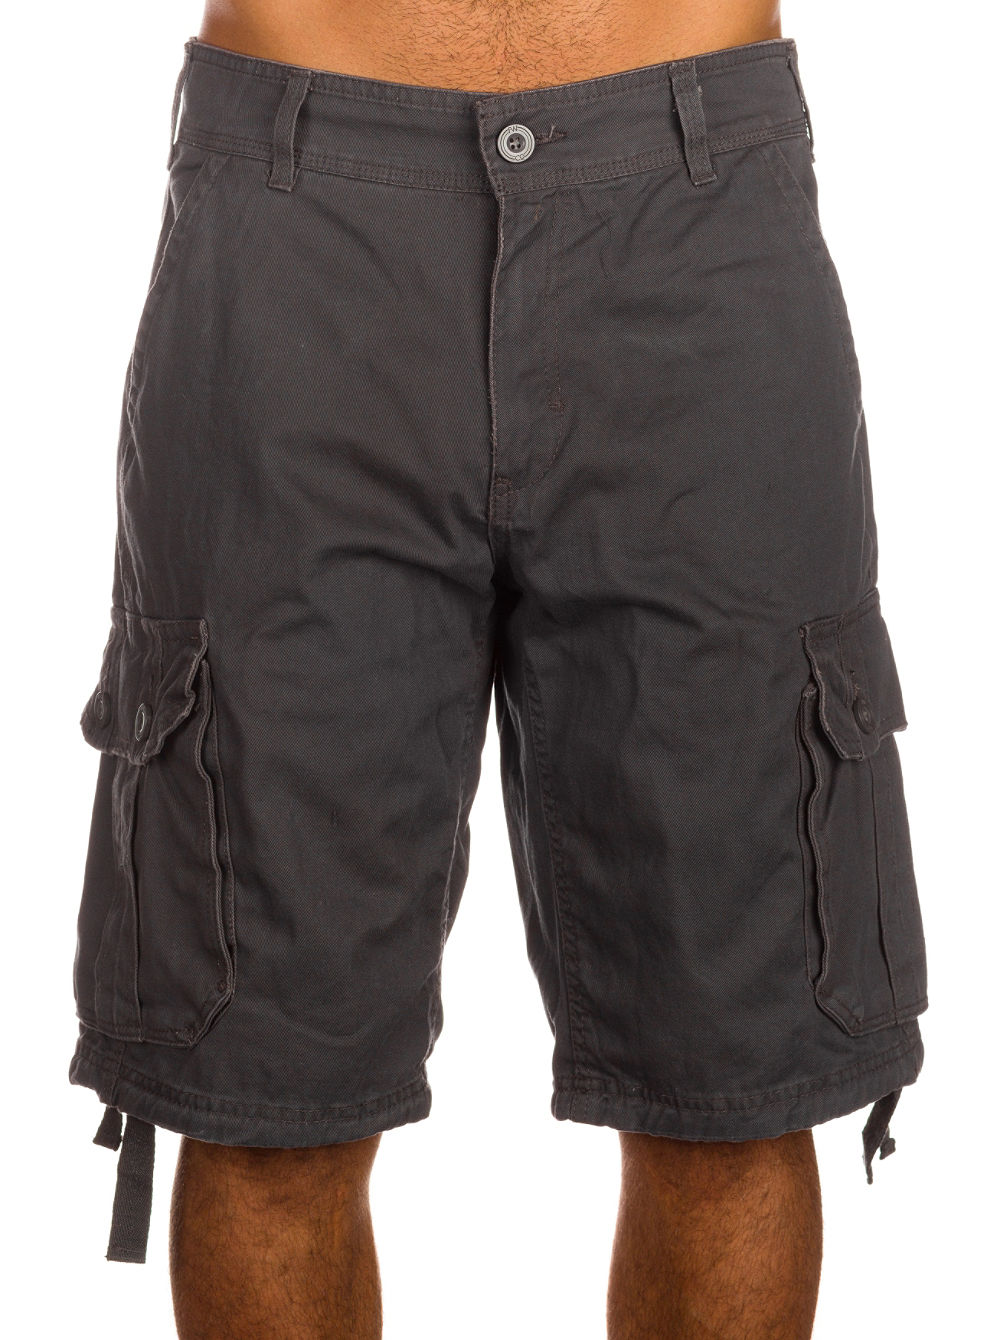 Debacle Cargo Shorts